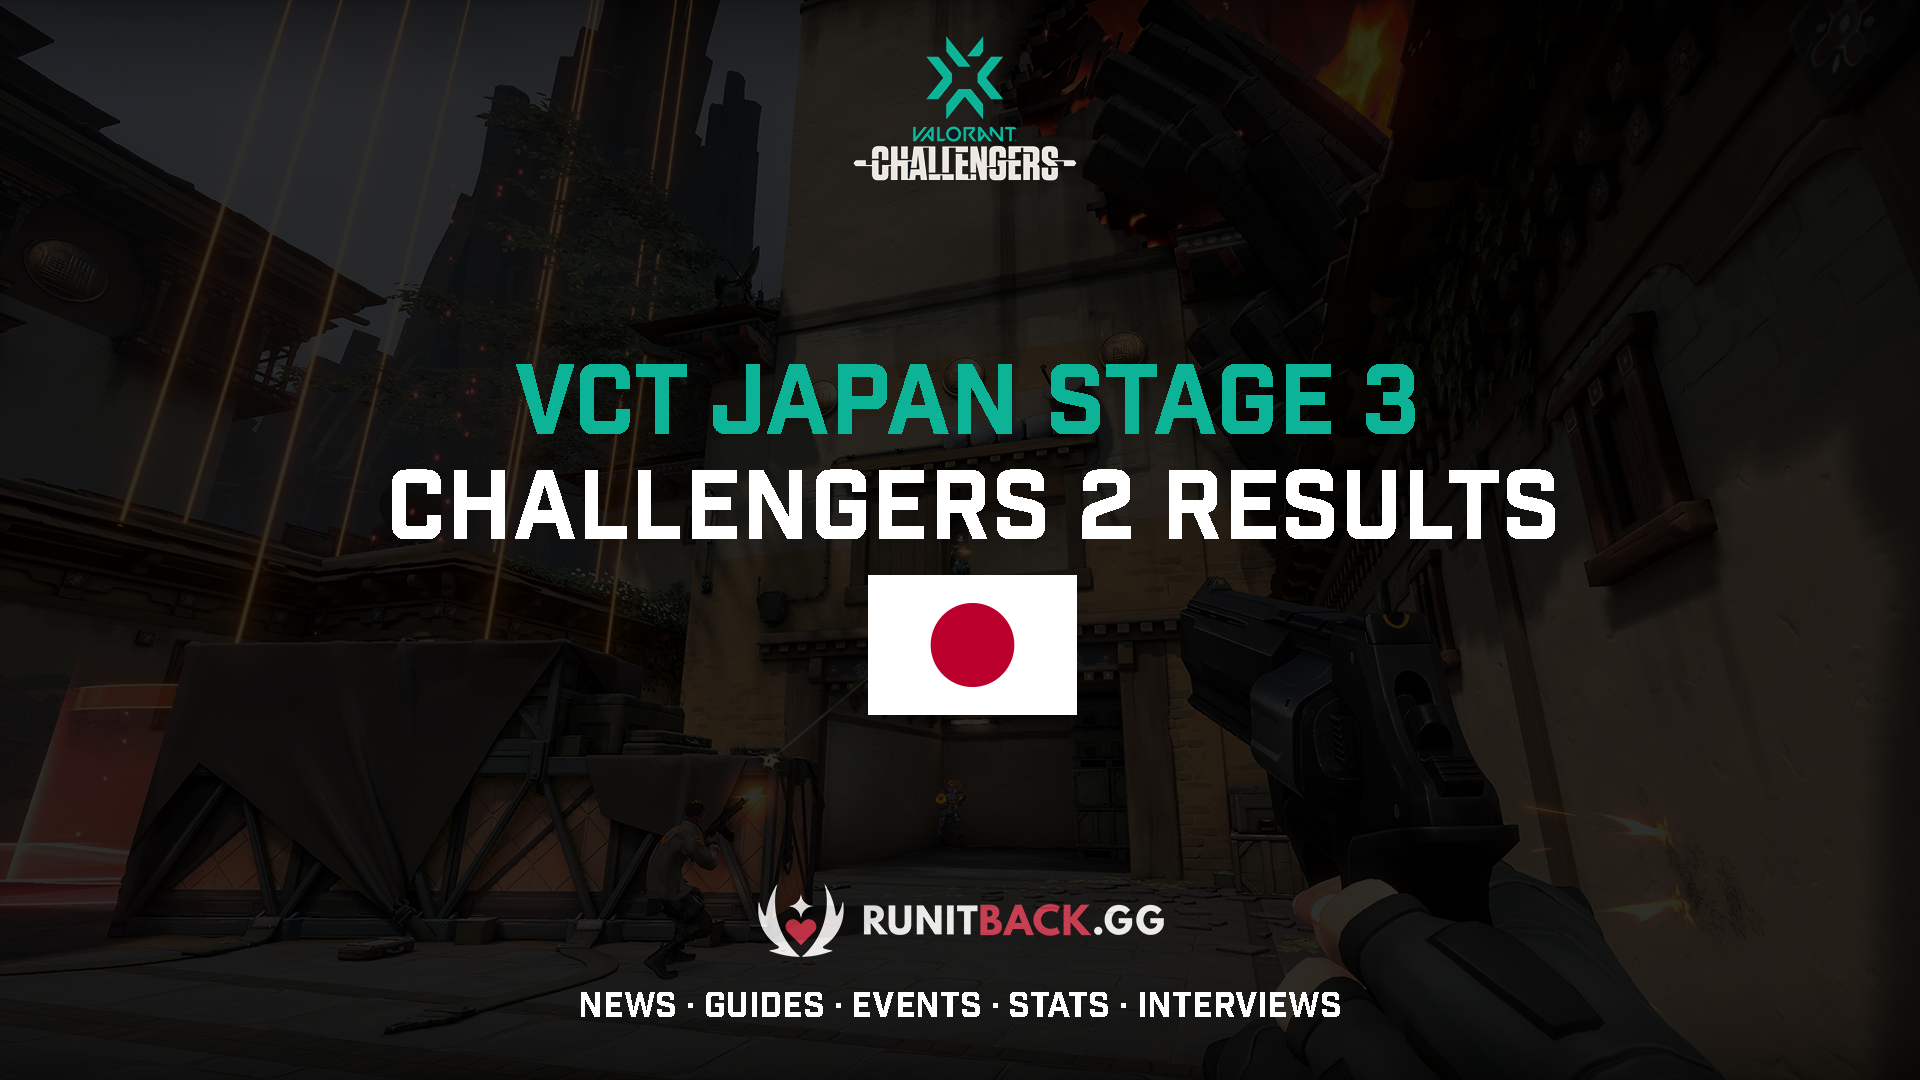 VCT Japan Stage 3 Challengers 2 Results